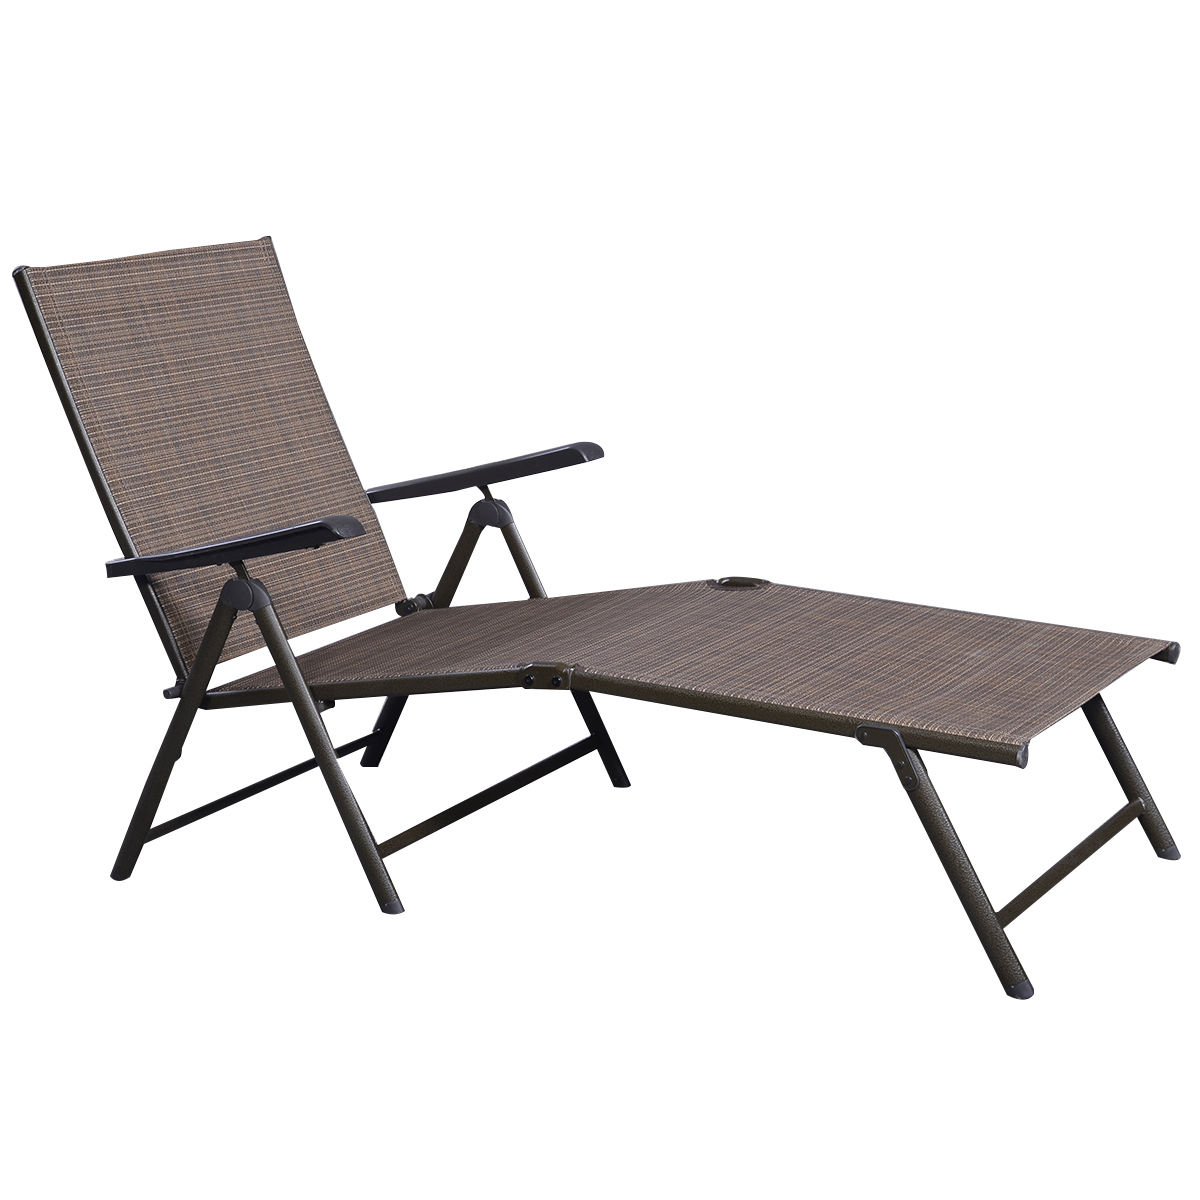 pictures of chaise lounge chairs chair stand design outdoor adjustable sunloungers seating furniture